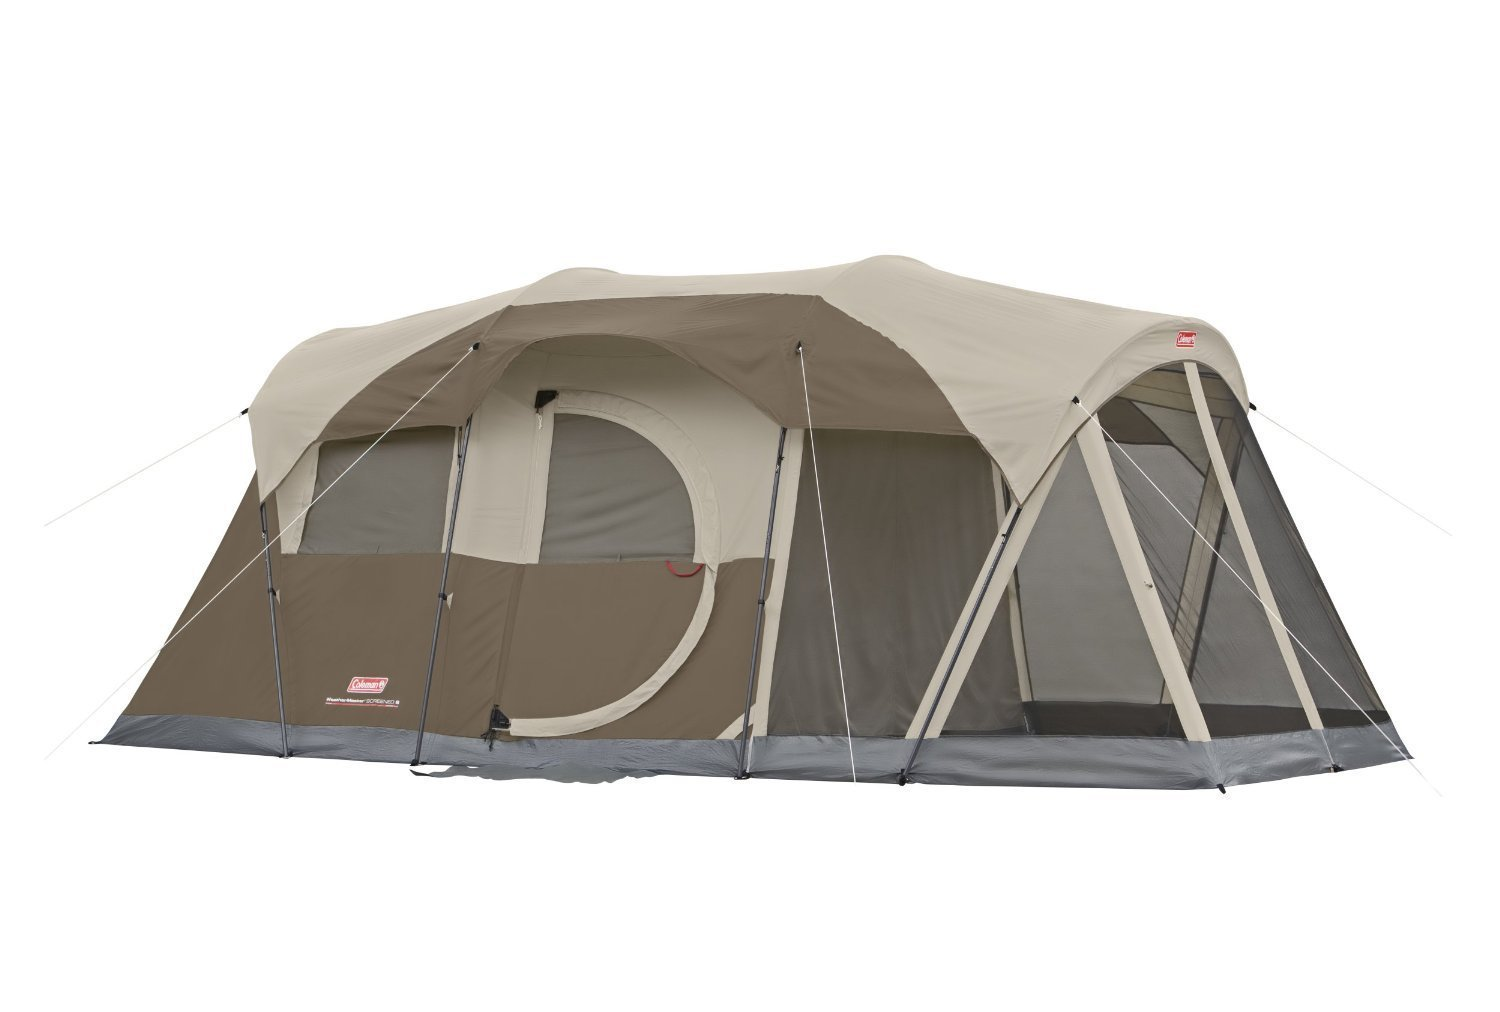 Brand New! Coleman Weathermaster Screened 6 Person Two Room Tent High Quality Fast Shipping Ship Worldwide